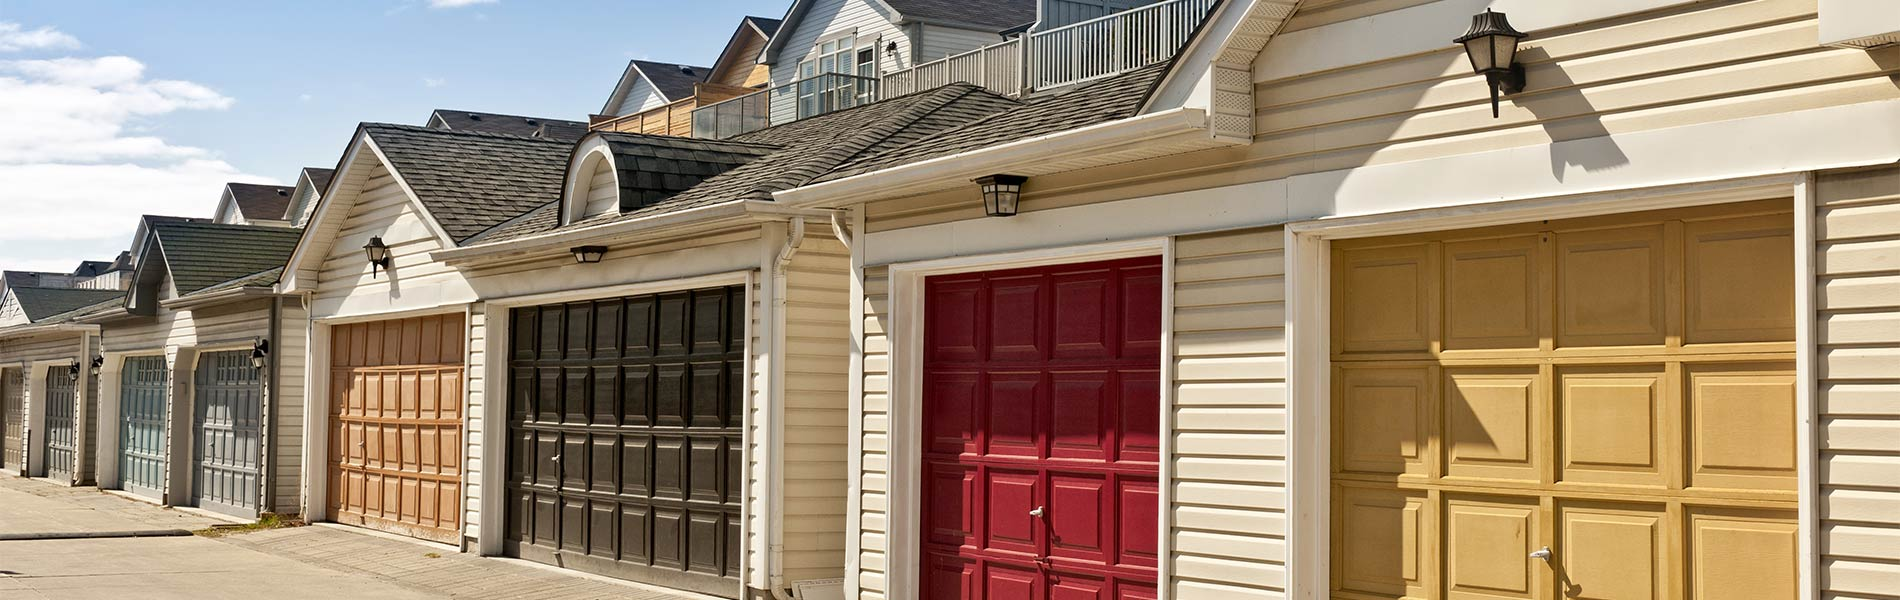 Capitol Garage Door Service, Towaco, NJ 973-521-8079